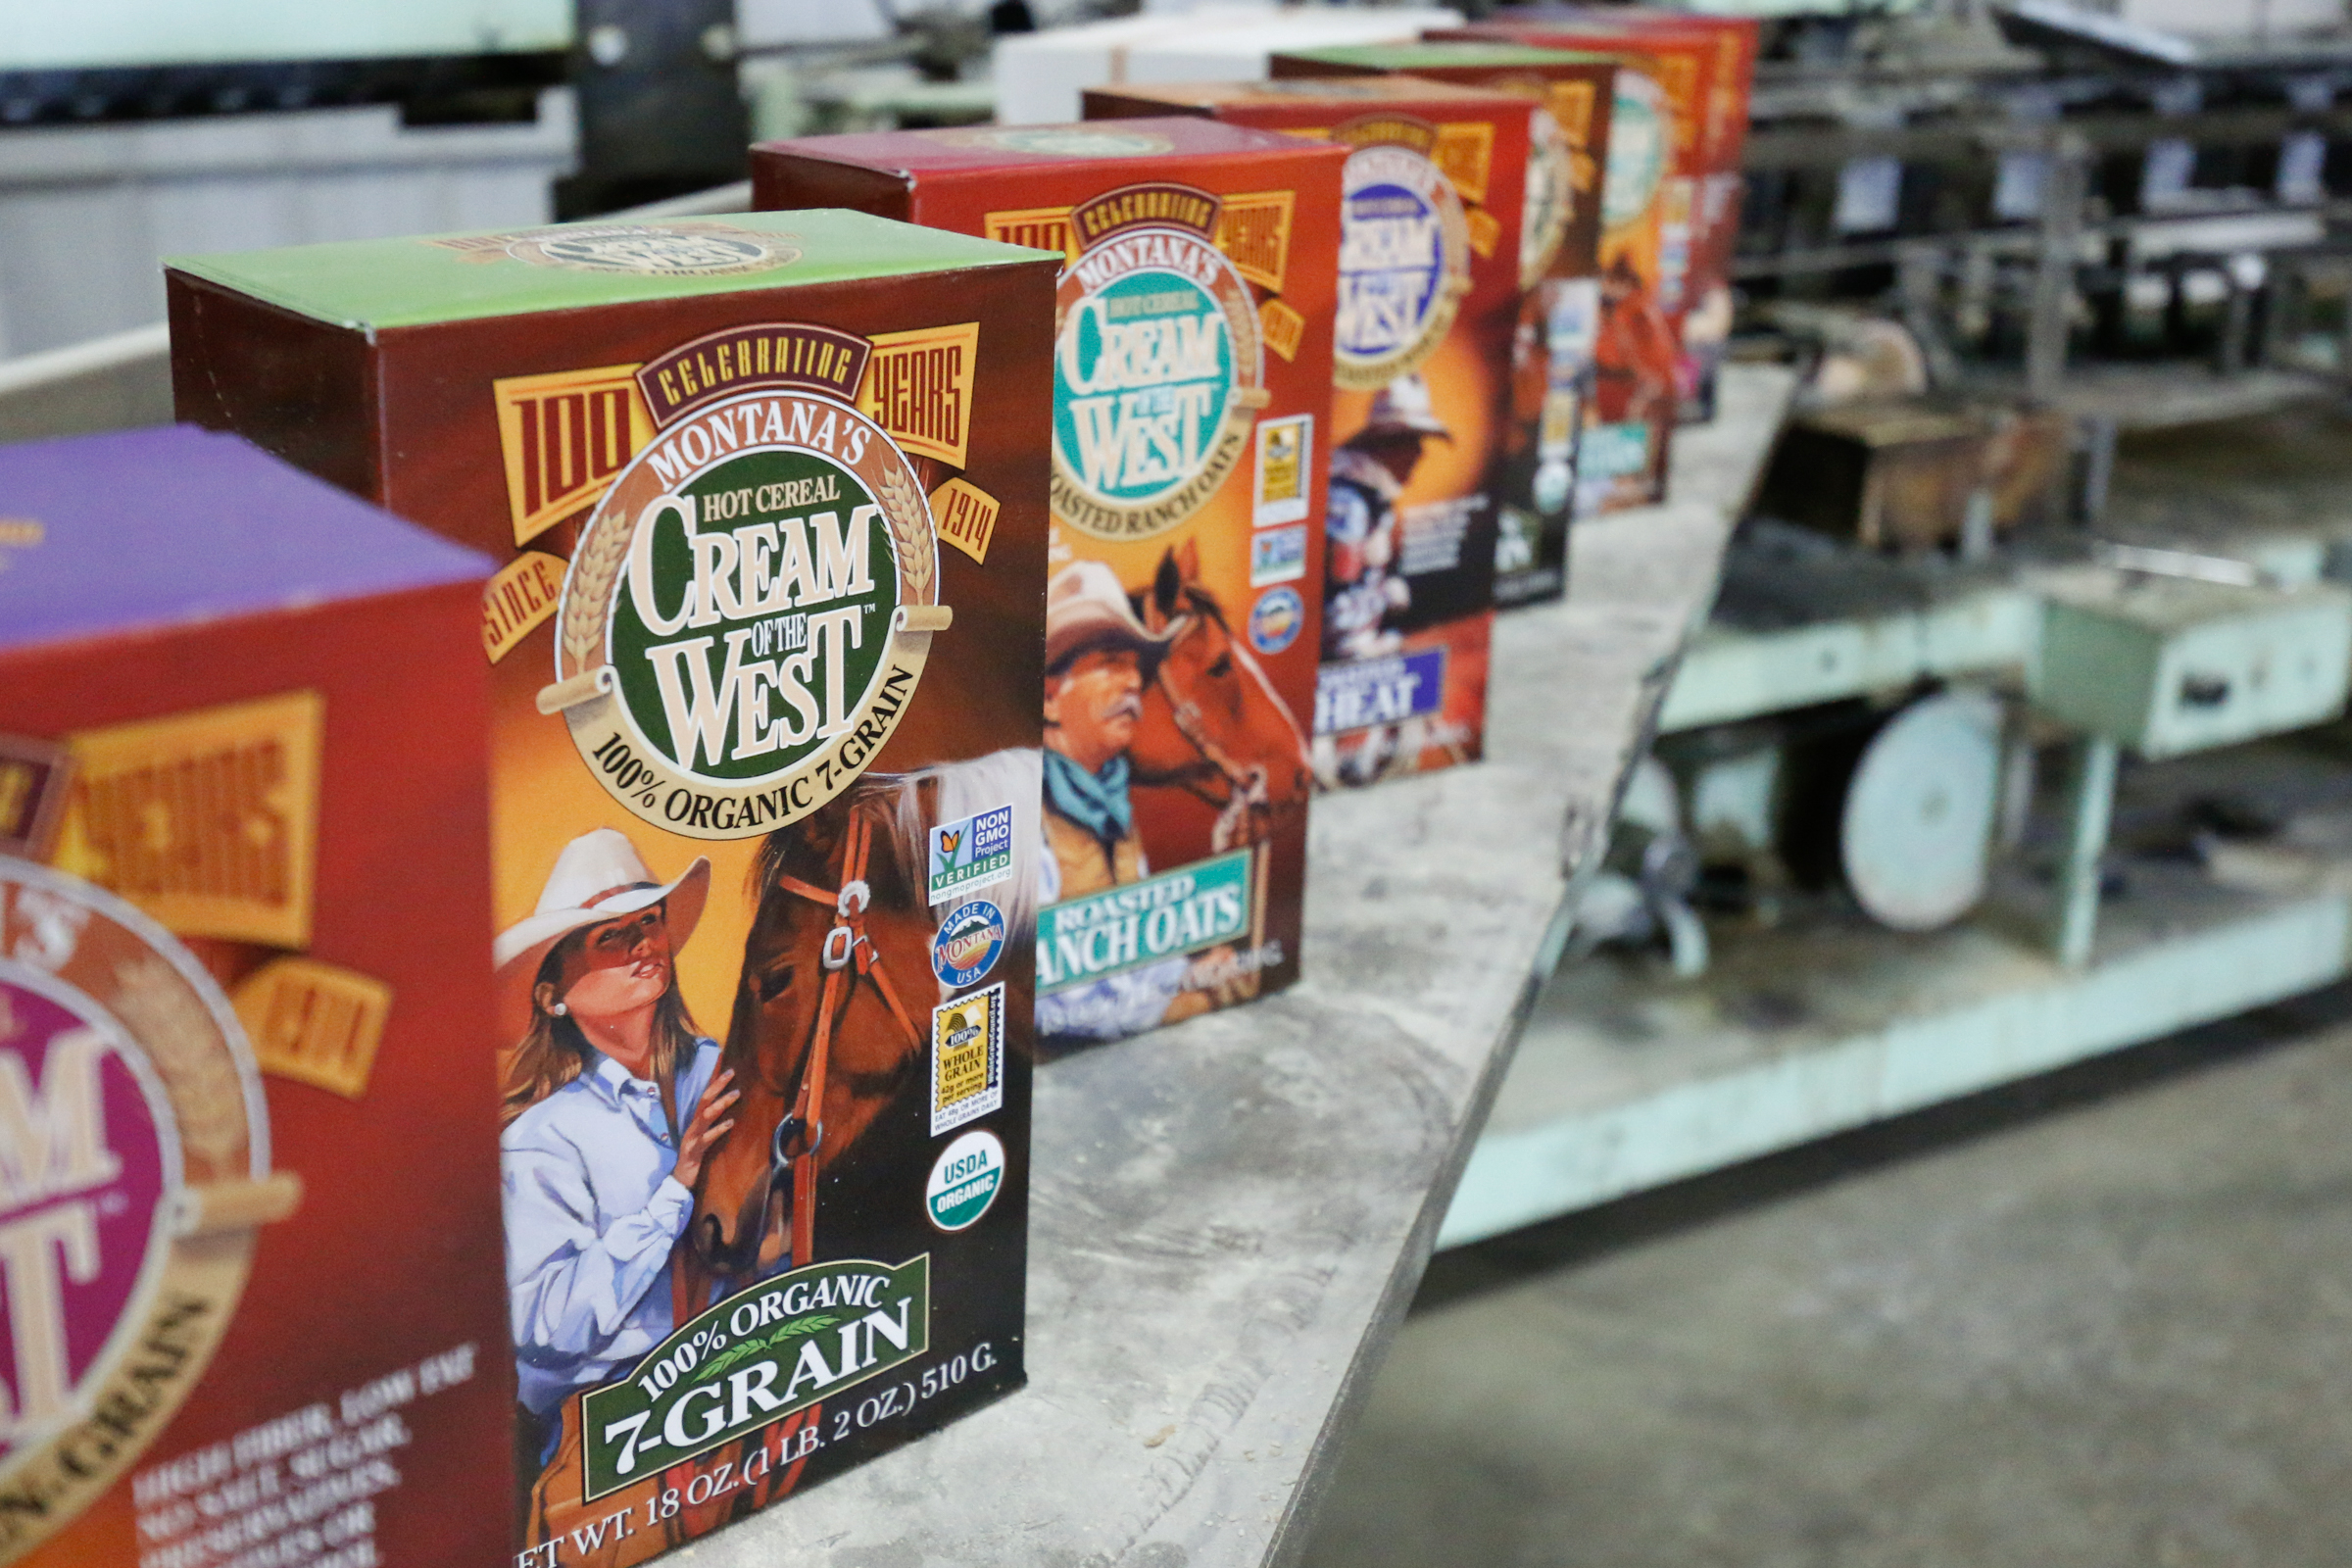 Boxes of Cream of the West product